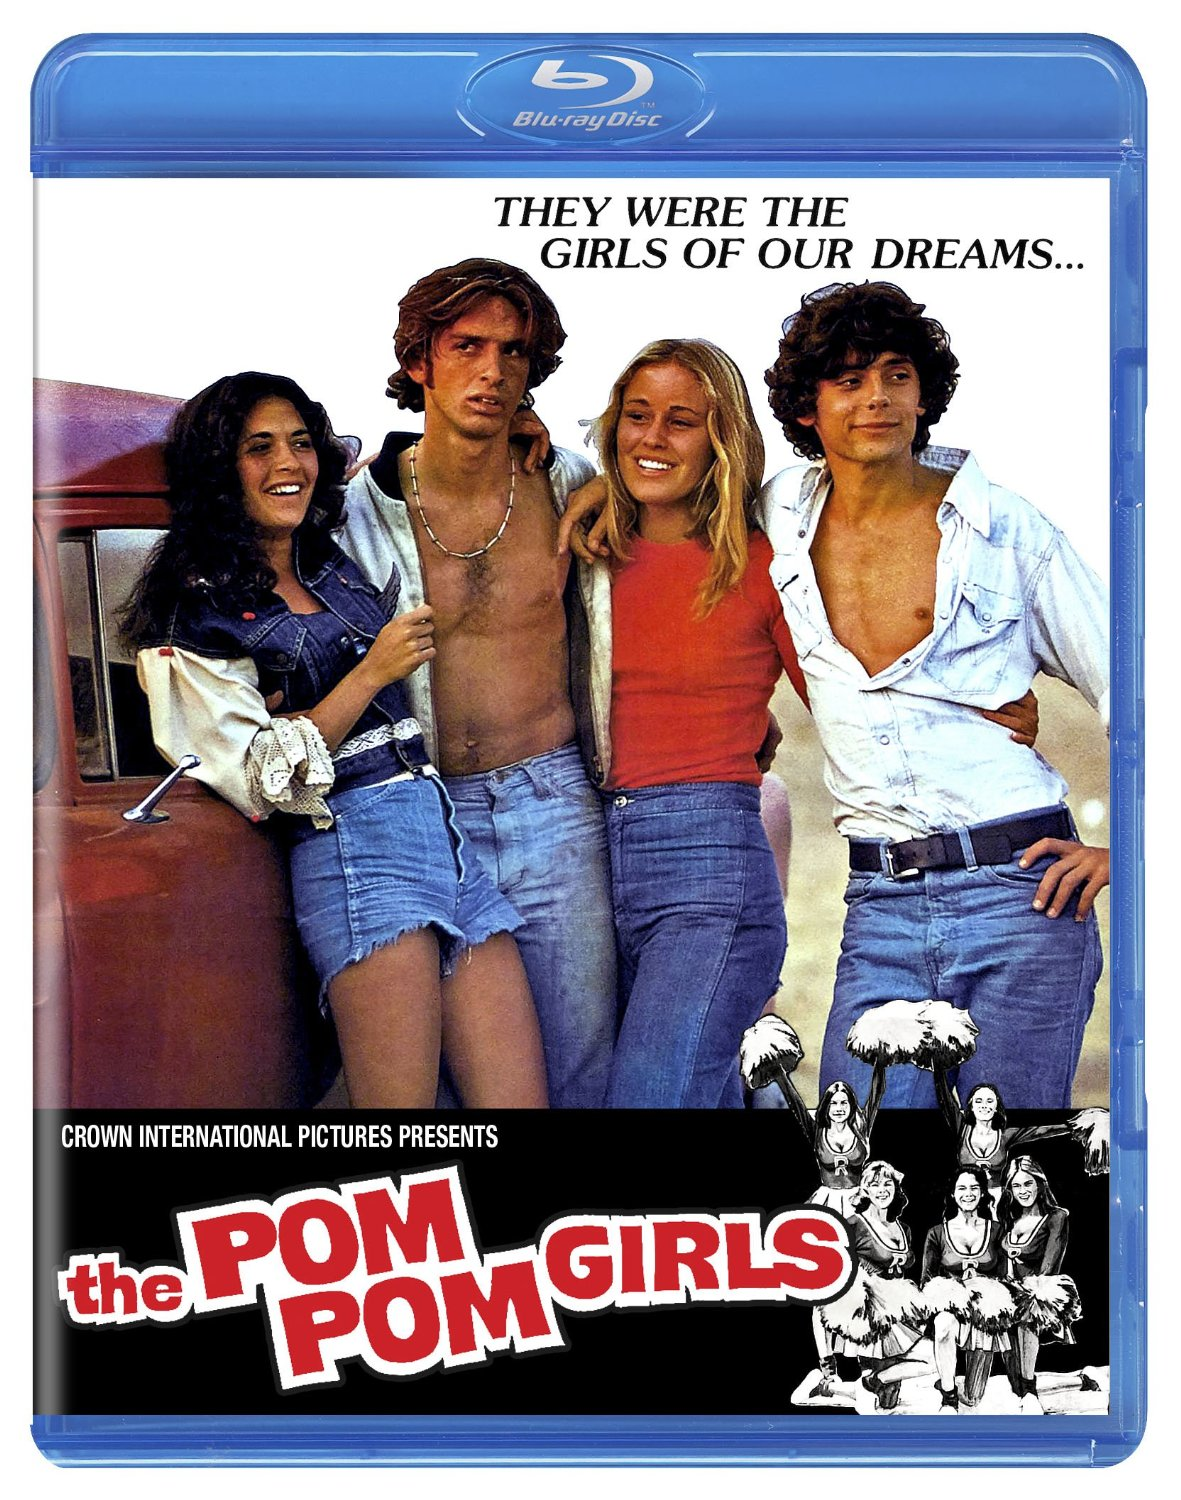 Phils Cult Classics The Pom Pom Girls 1976 From Scorpion Releasing March 11 2016